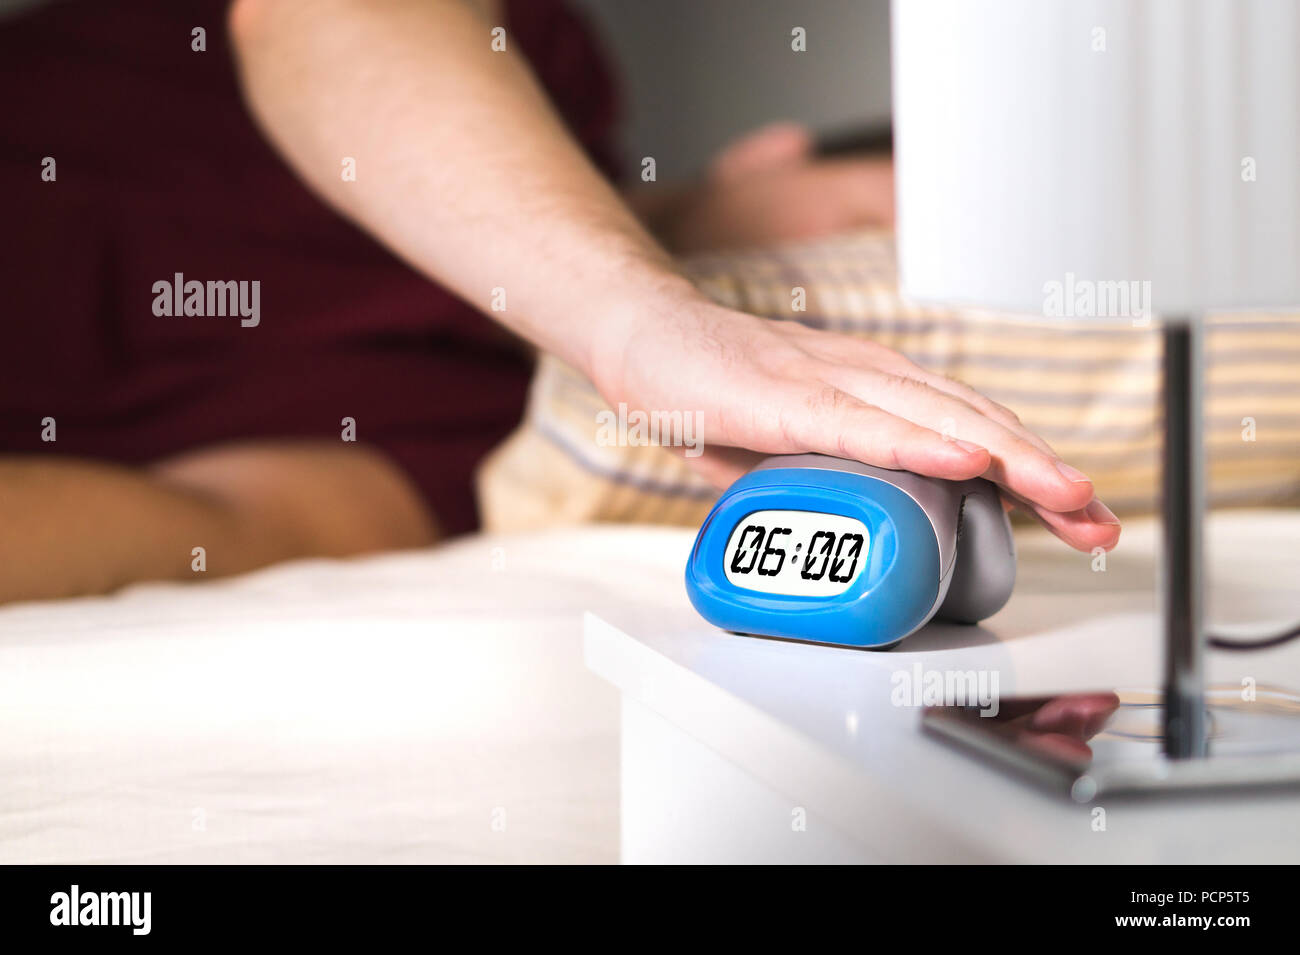 Man waking up in bed. Turning off alarm clock on nightstand or pressing snooze. - Stock Image